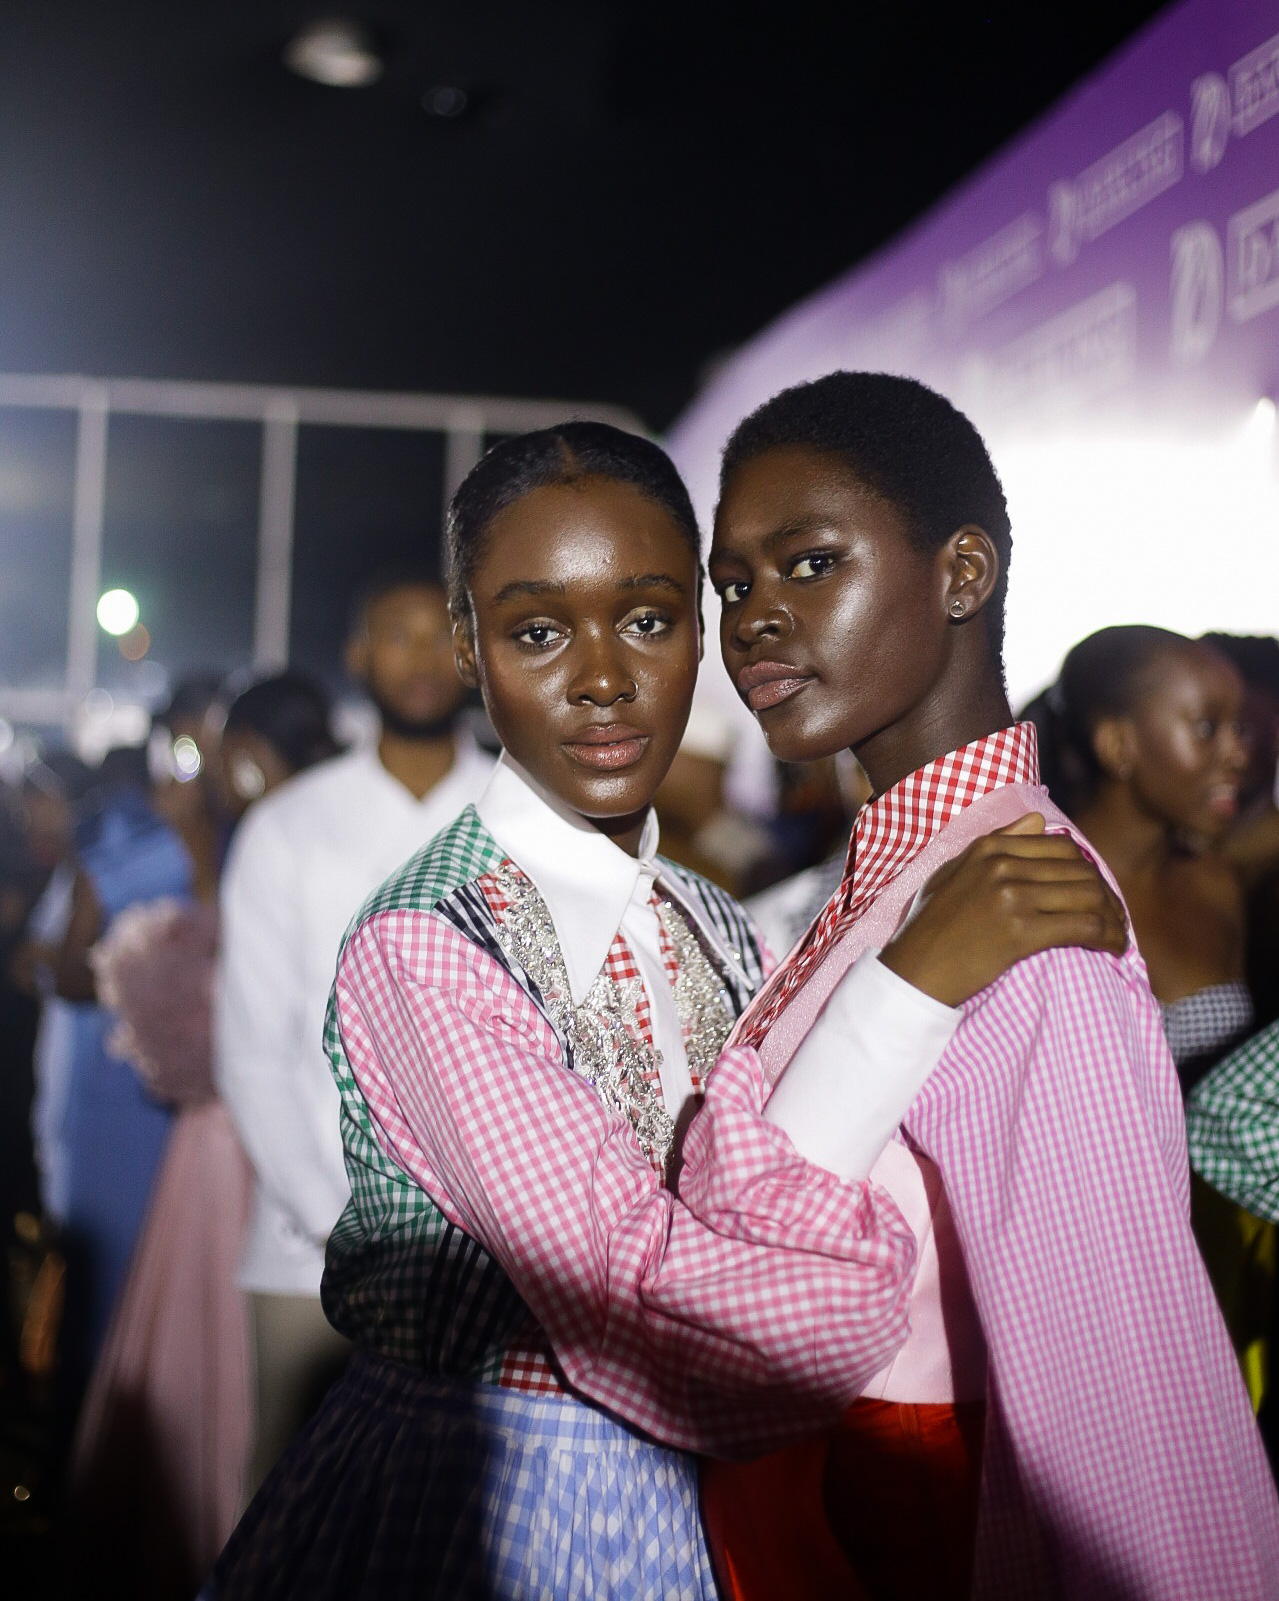 Backstage Photos From Lagos Fashion And Design Week 2019